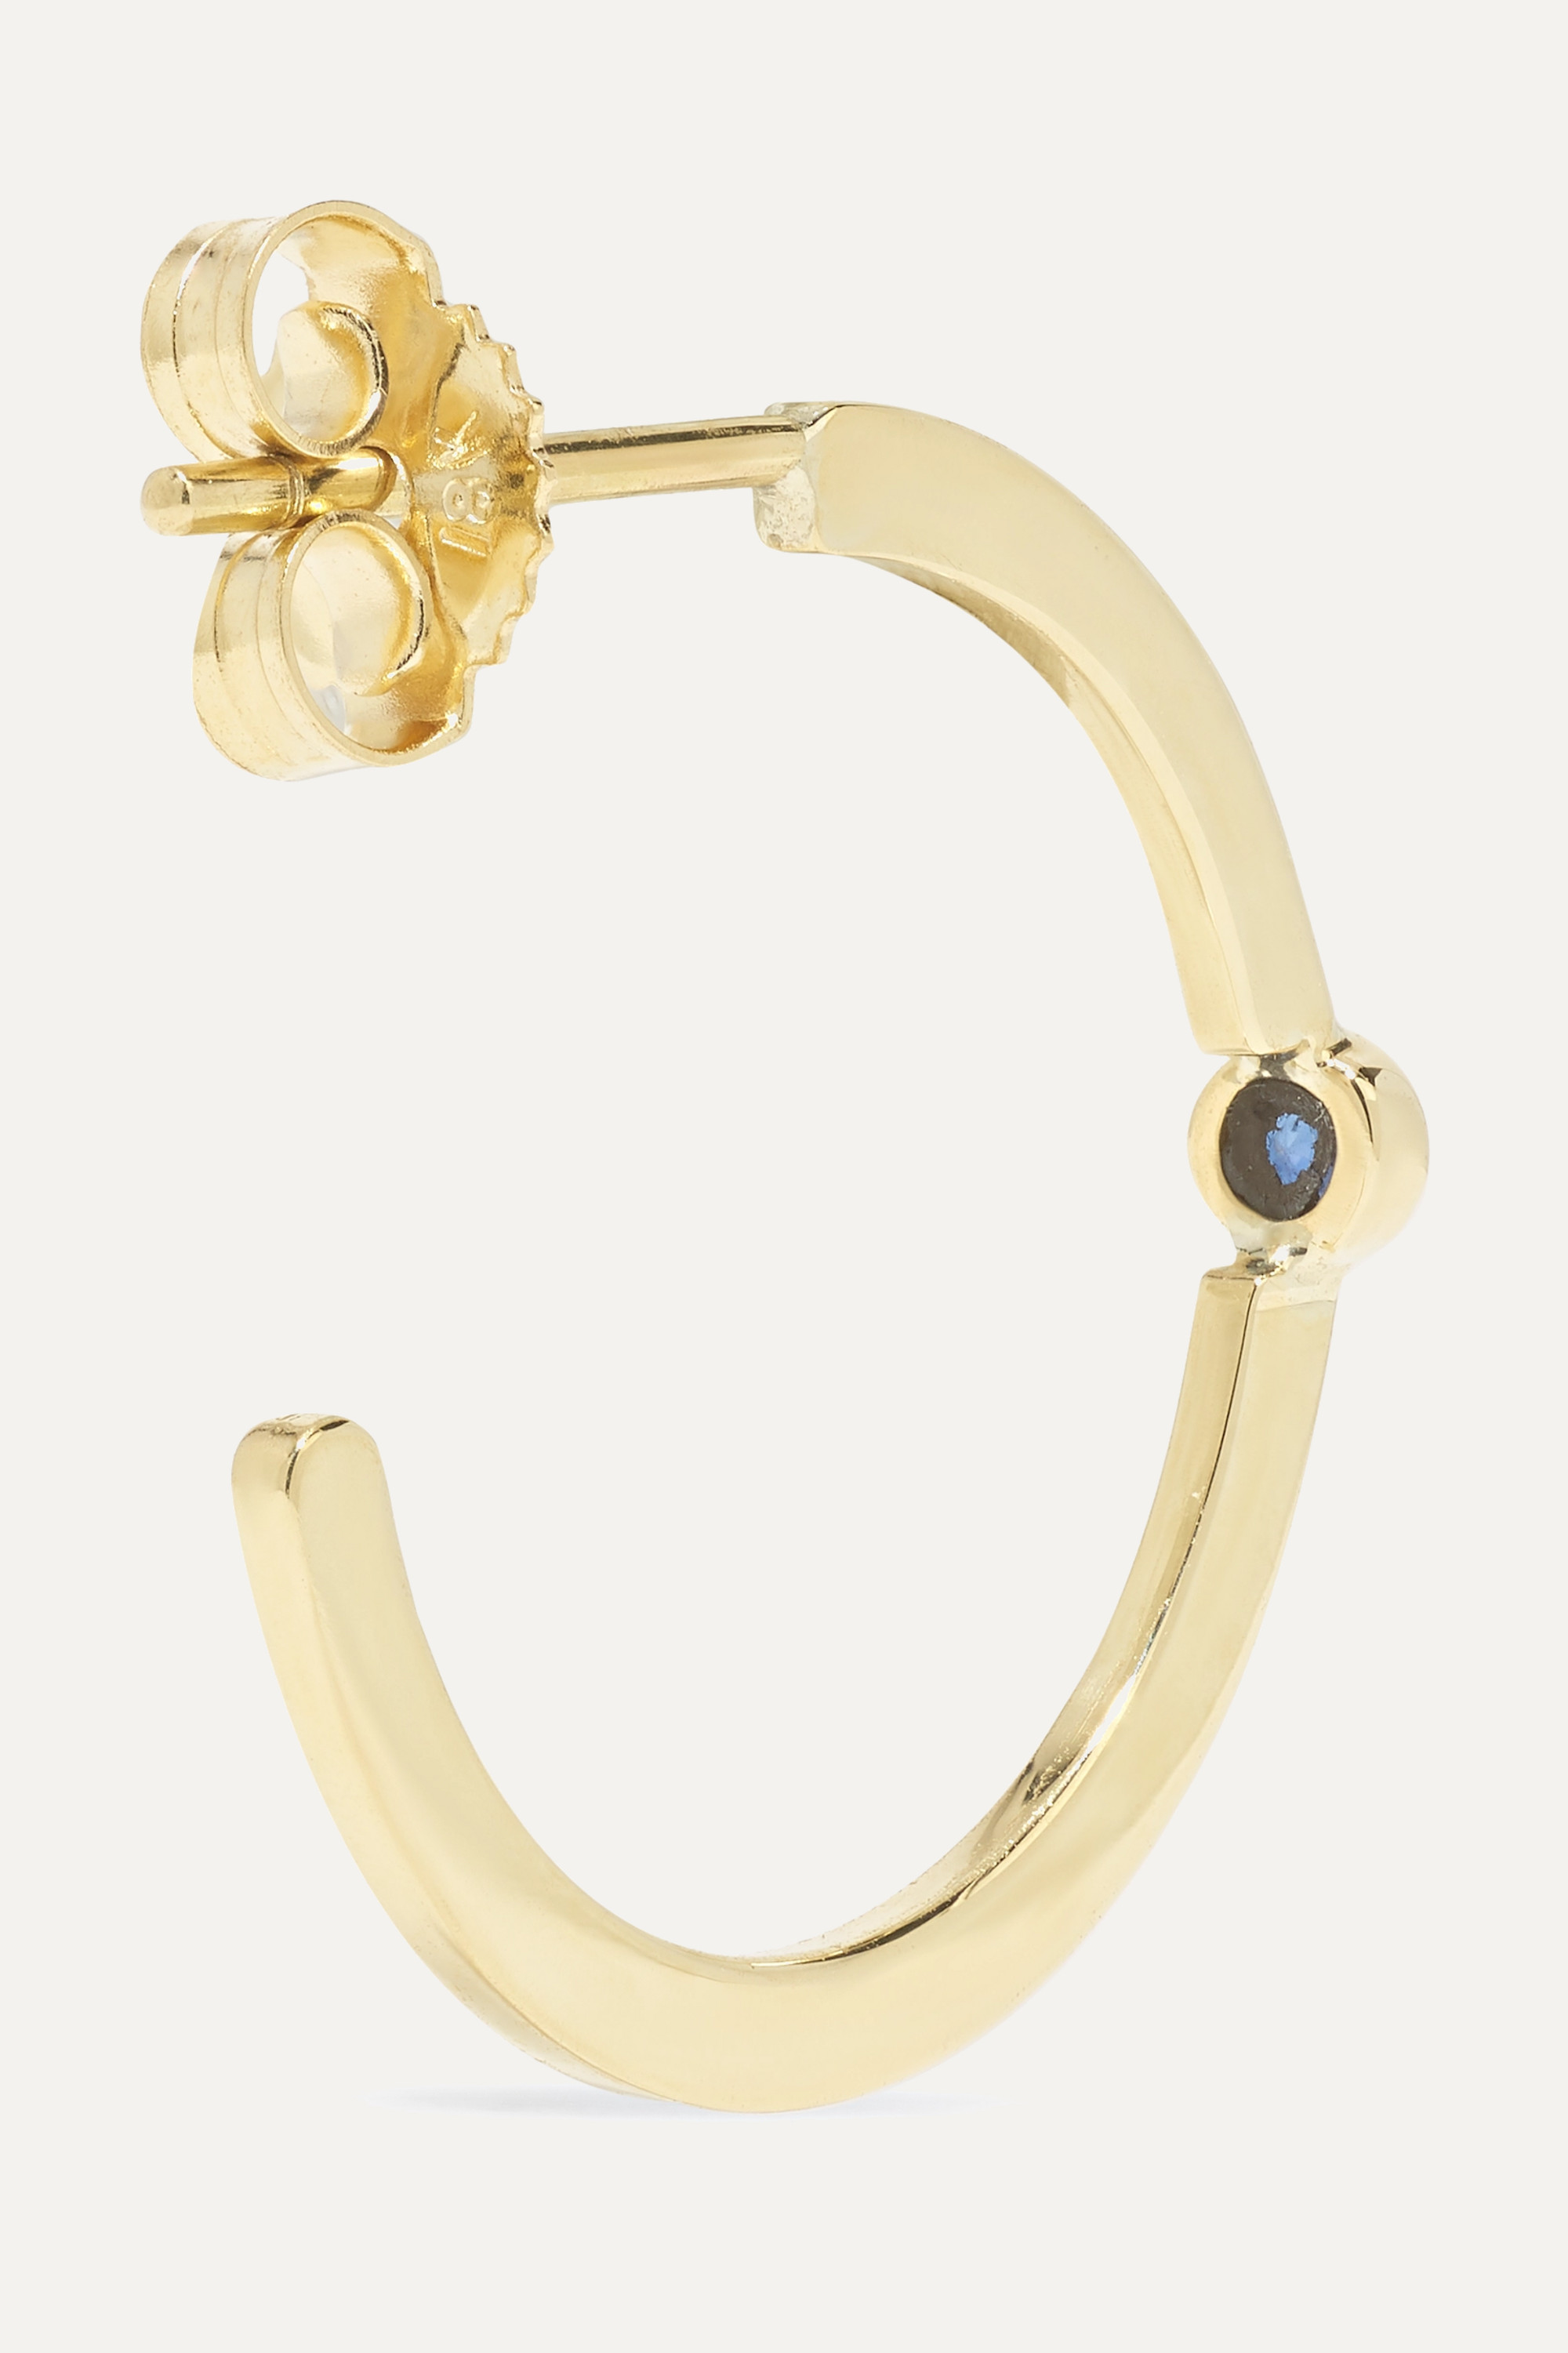 JENNIFER MEYER 18-karat gold sapphire hoop earrings